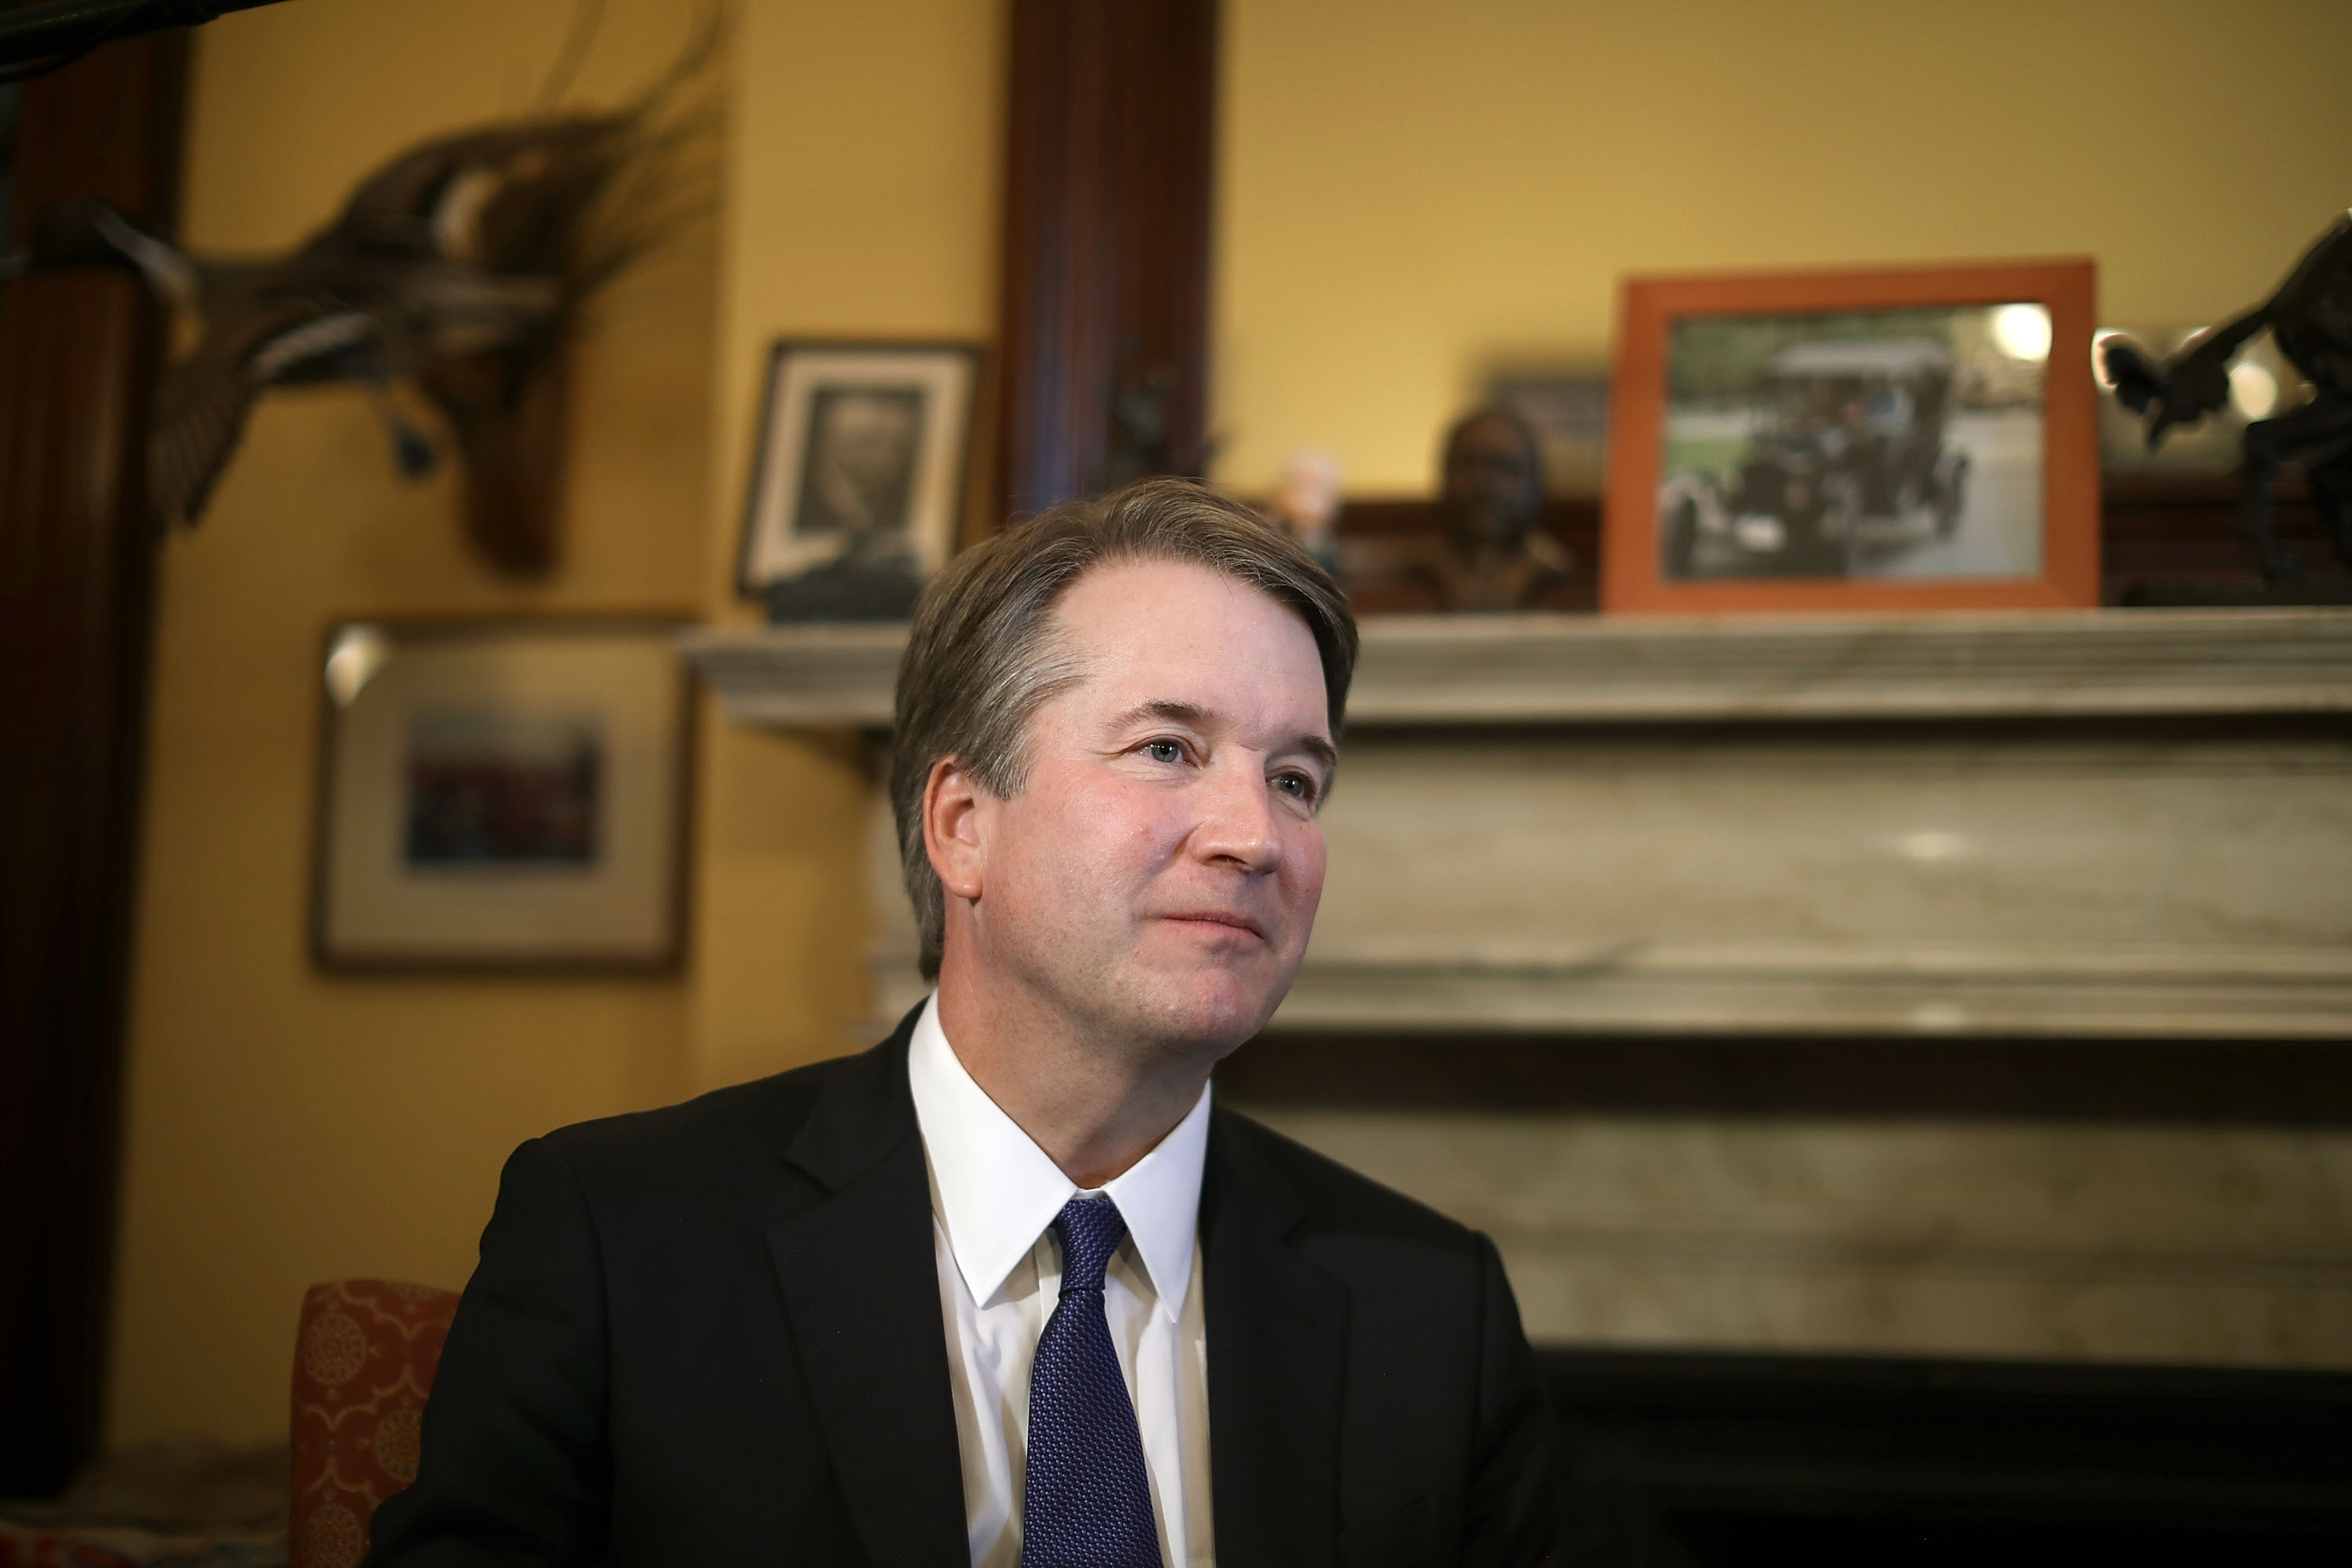 Judge Brett Kavanaugh listens to Sen. Rob Portman (R-OH) talk about Kavanaugh's qualifications before a meeting in the Russell Senate Office Building on Capitol Hill July 11, 2018 in Washington, DC.